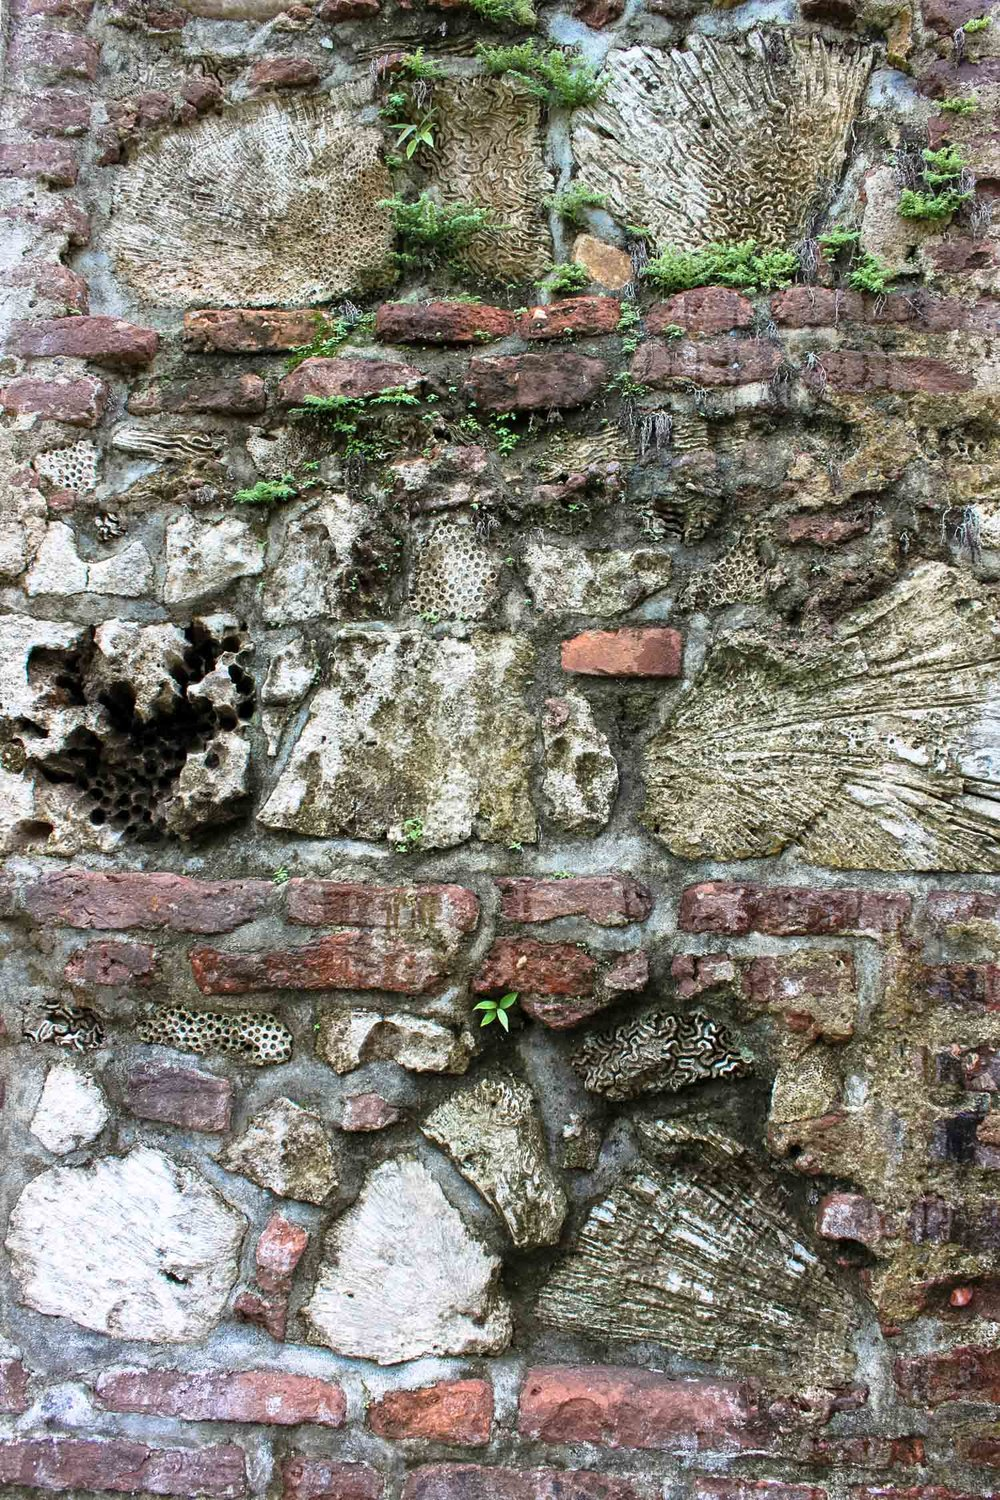 Sea shells were used to build the walls